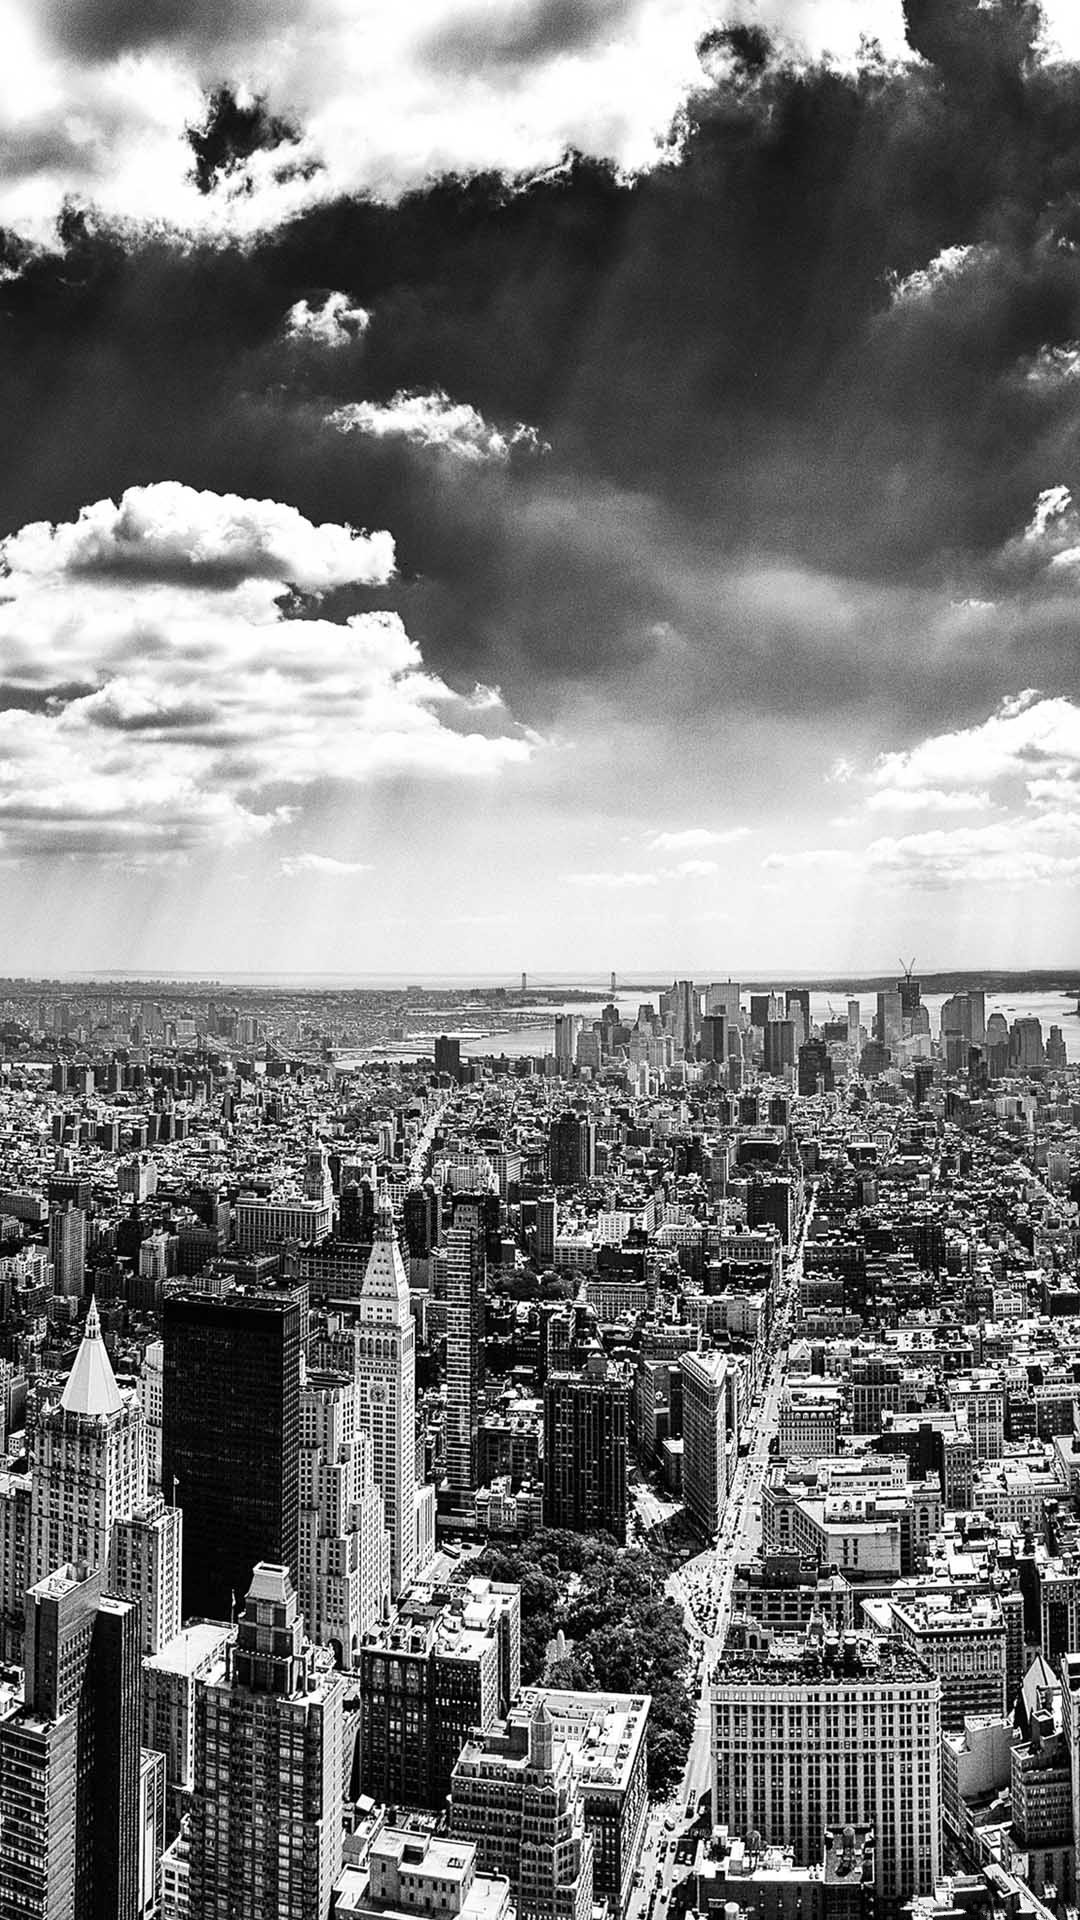 1920x1080 skyline new york city black and white taxi wallpaper hd 8218 wallpaper